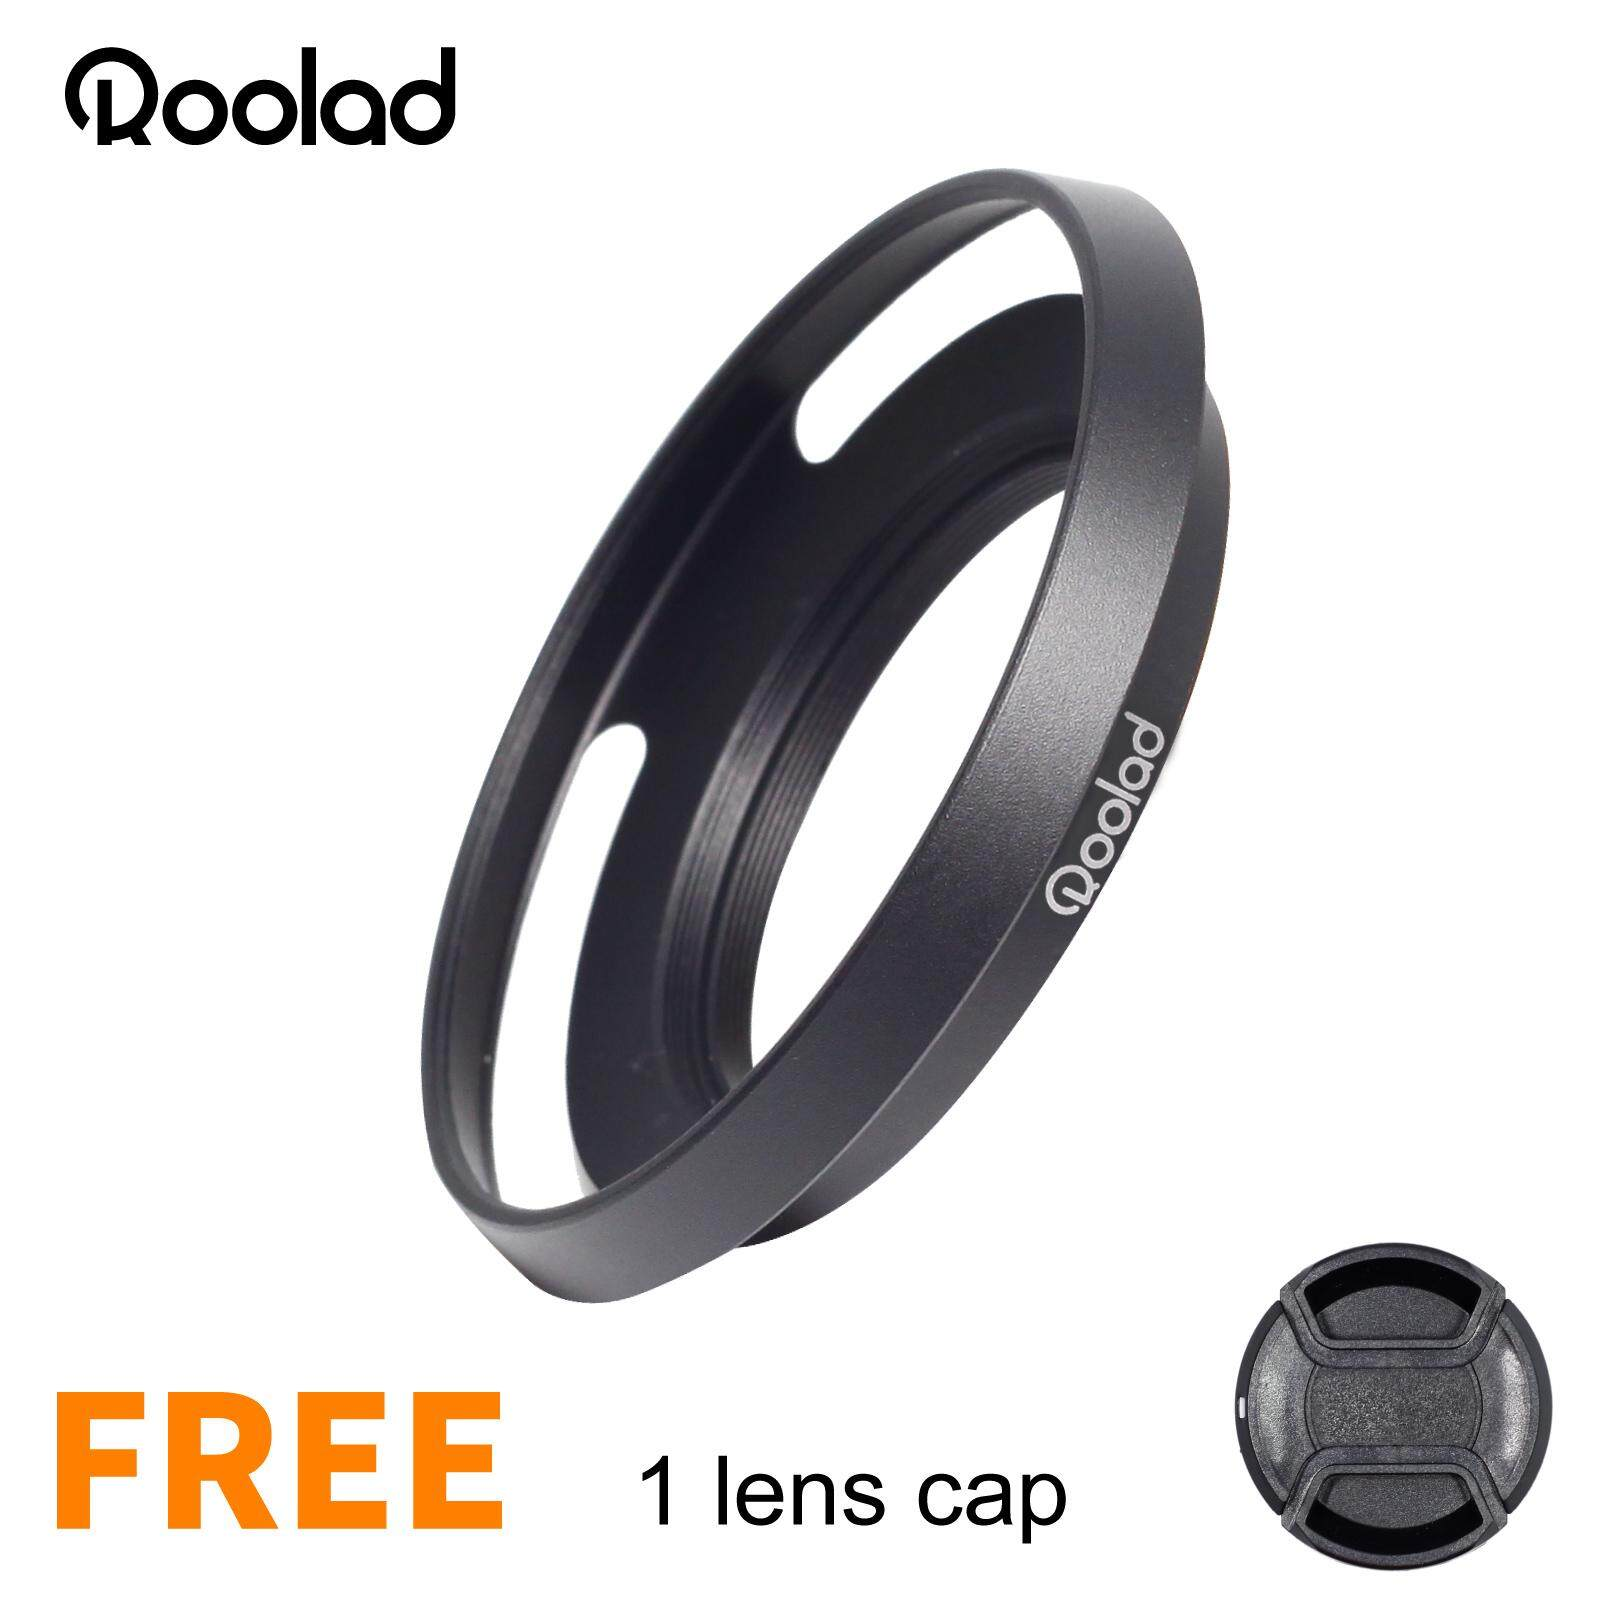 39mm Roolad Metal Lens Hood For Dslr And Mirrorless Camera Leica M50/2 28/28 Fuji27/2.8 Vm 21mm F3.5 Asph Voigtlander Vm 35mm F2 Ultron Or  ⌀ 39 Filter  Protect Accessory With Lens Cap Black Silver.